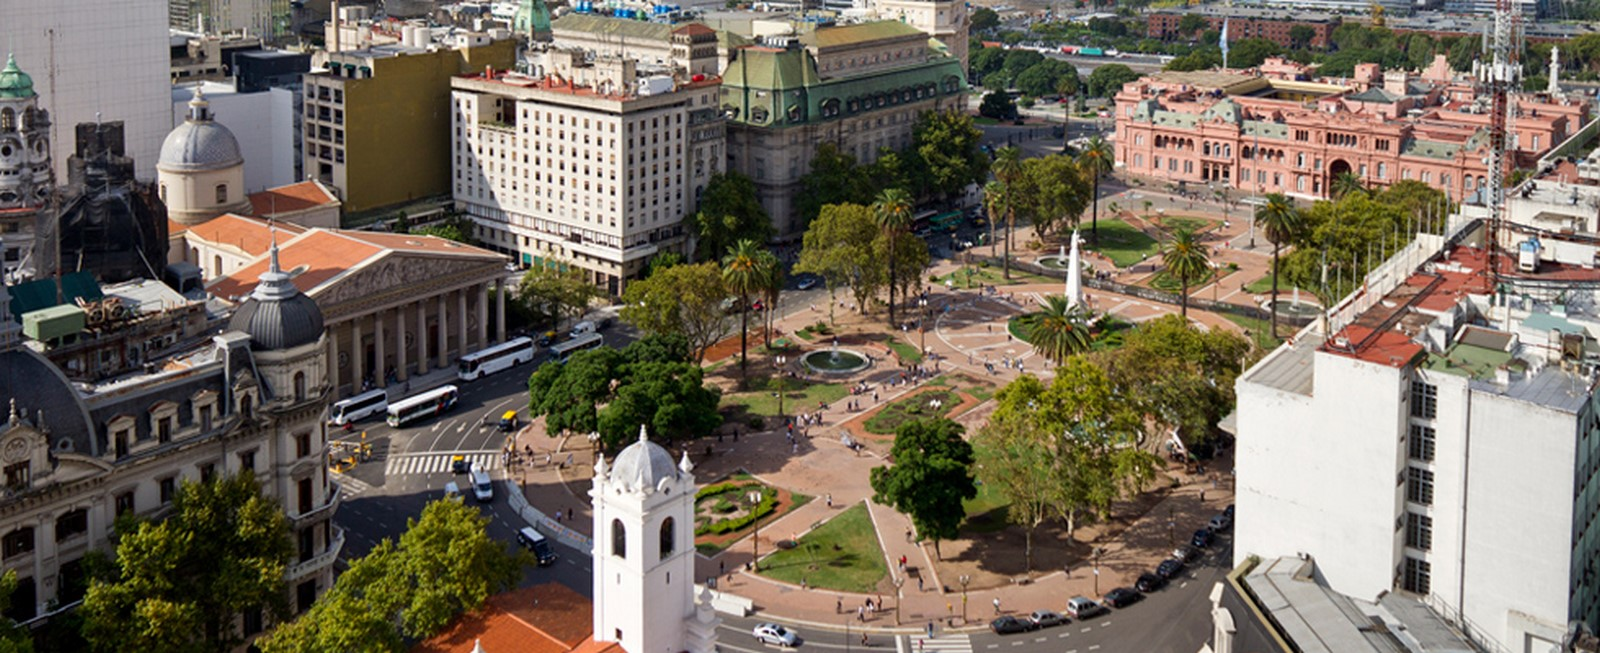 10 Things you did not know about Plaza de Mayo - Sheet2